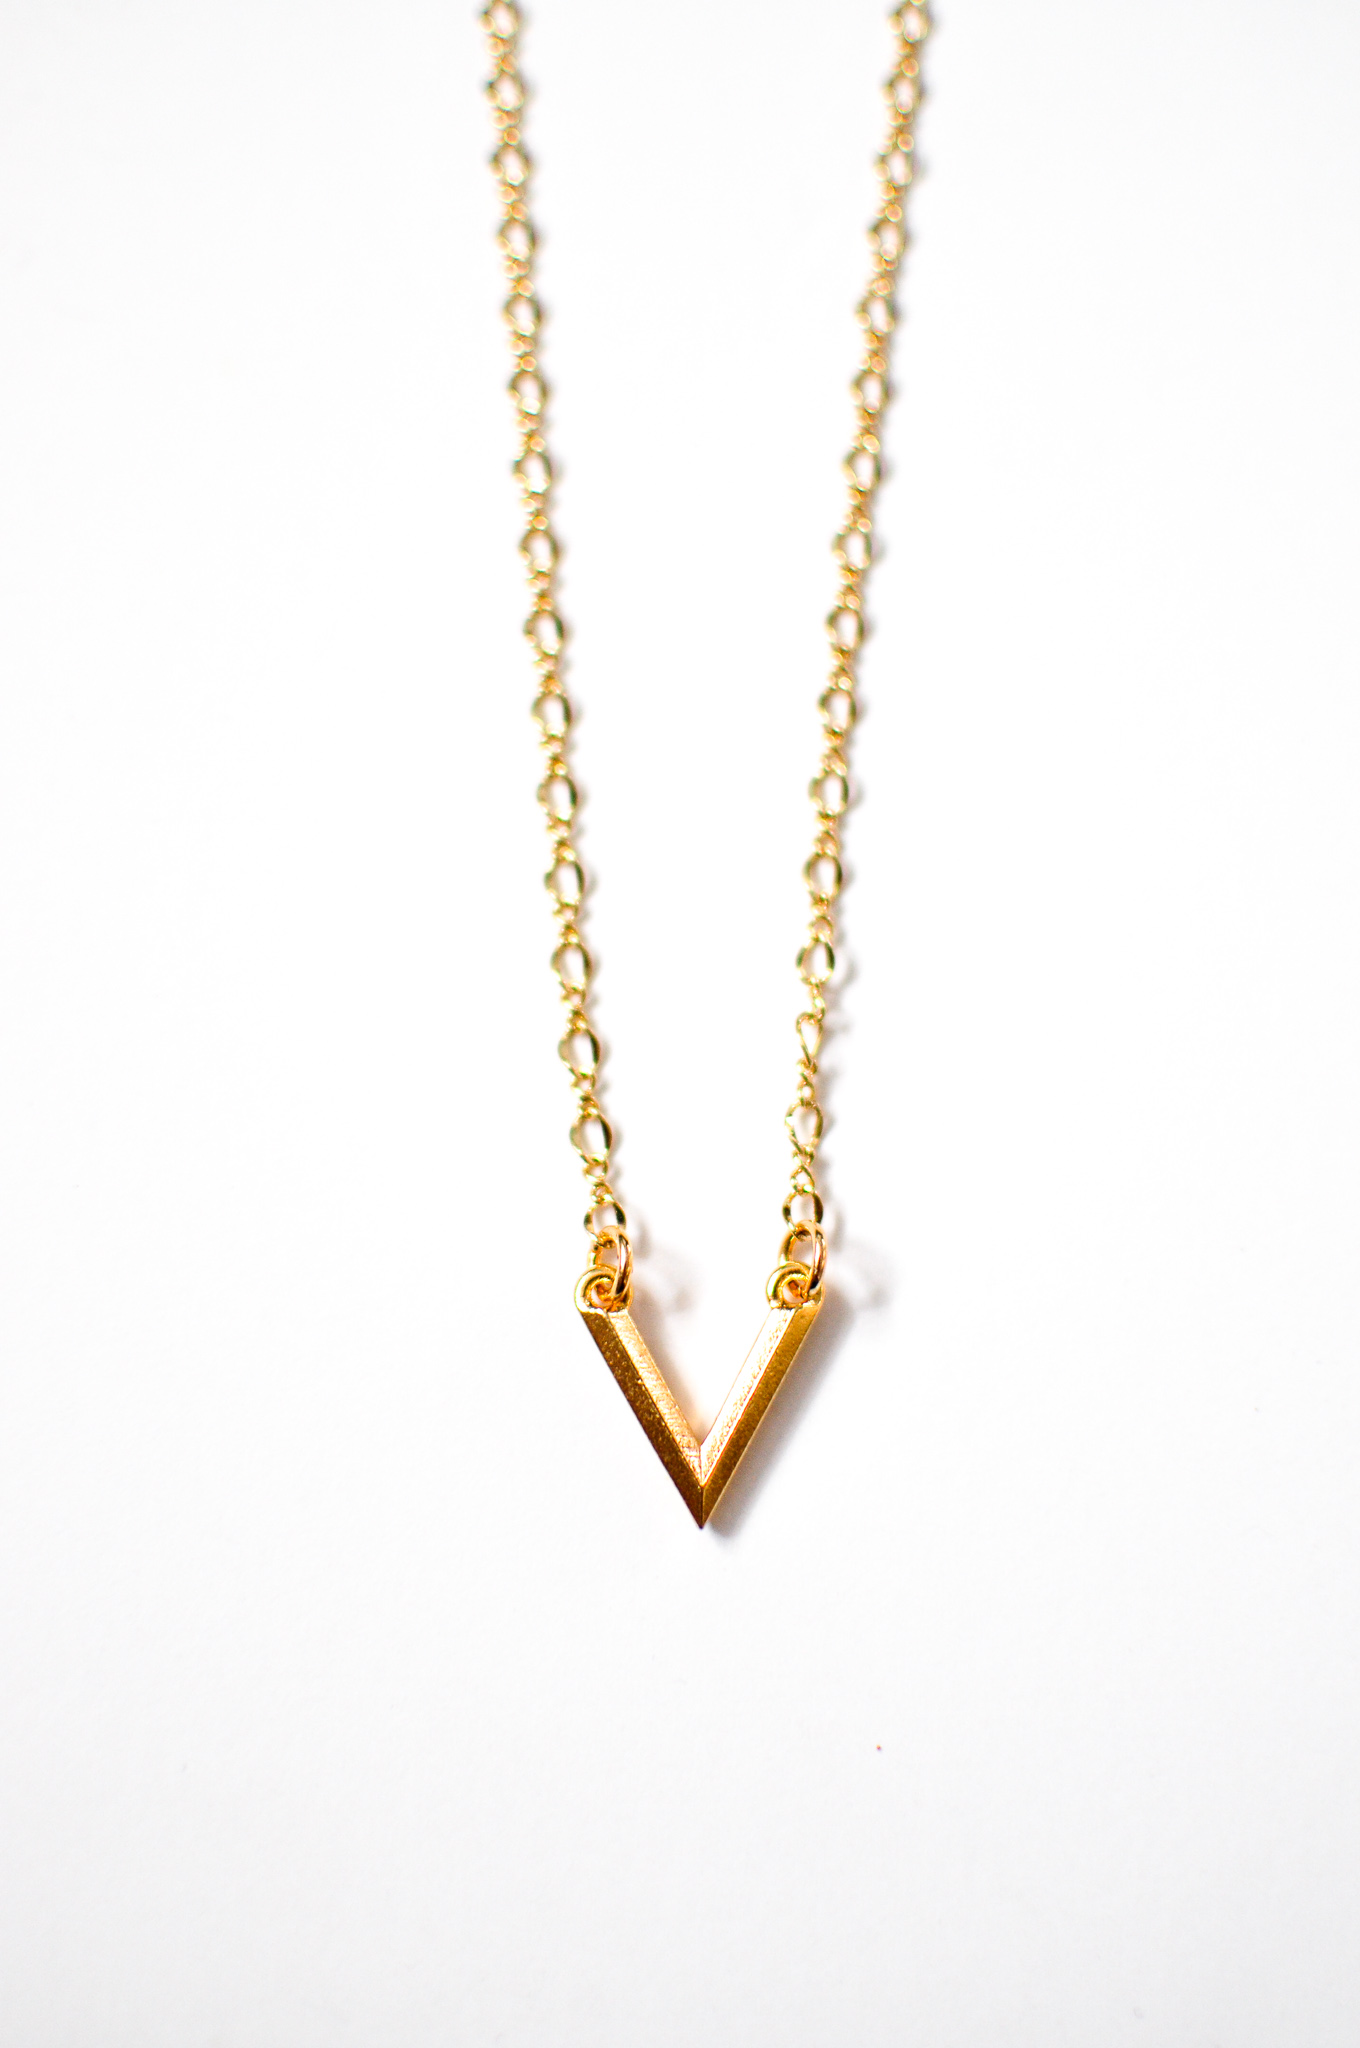 simple gold triangle geometric necklace created by indie twenty jewelry. get the spring and summer beach layering trend.